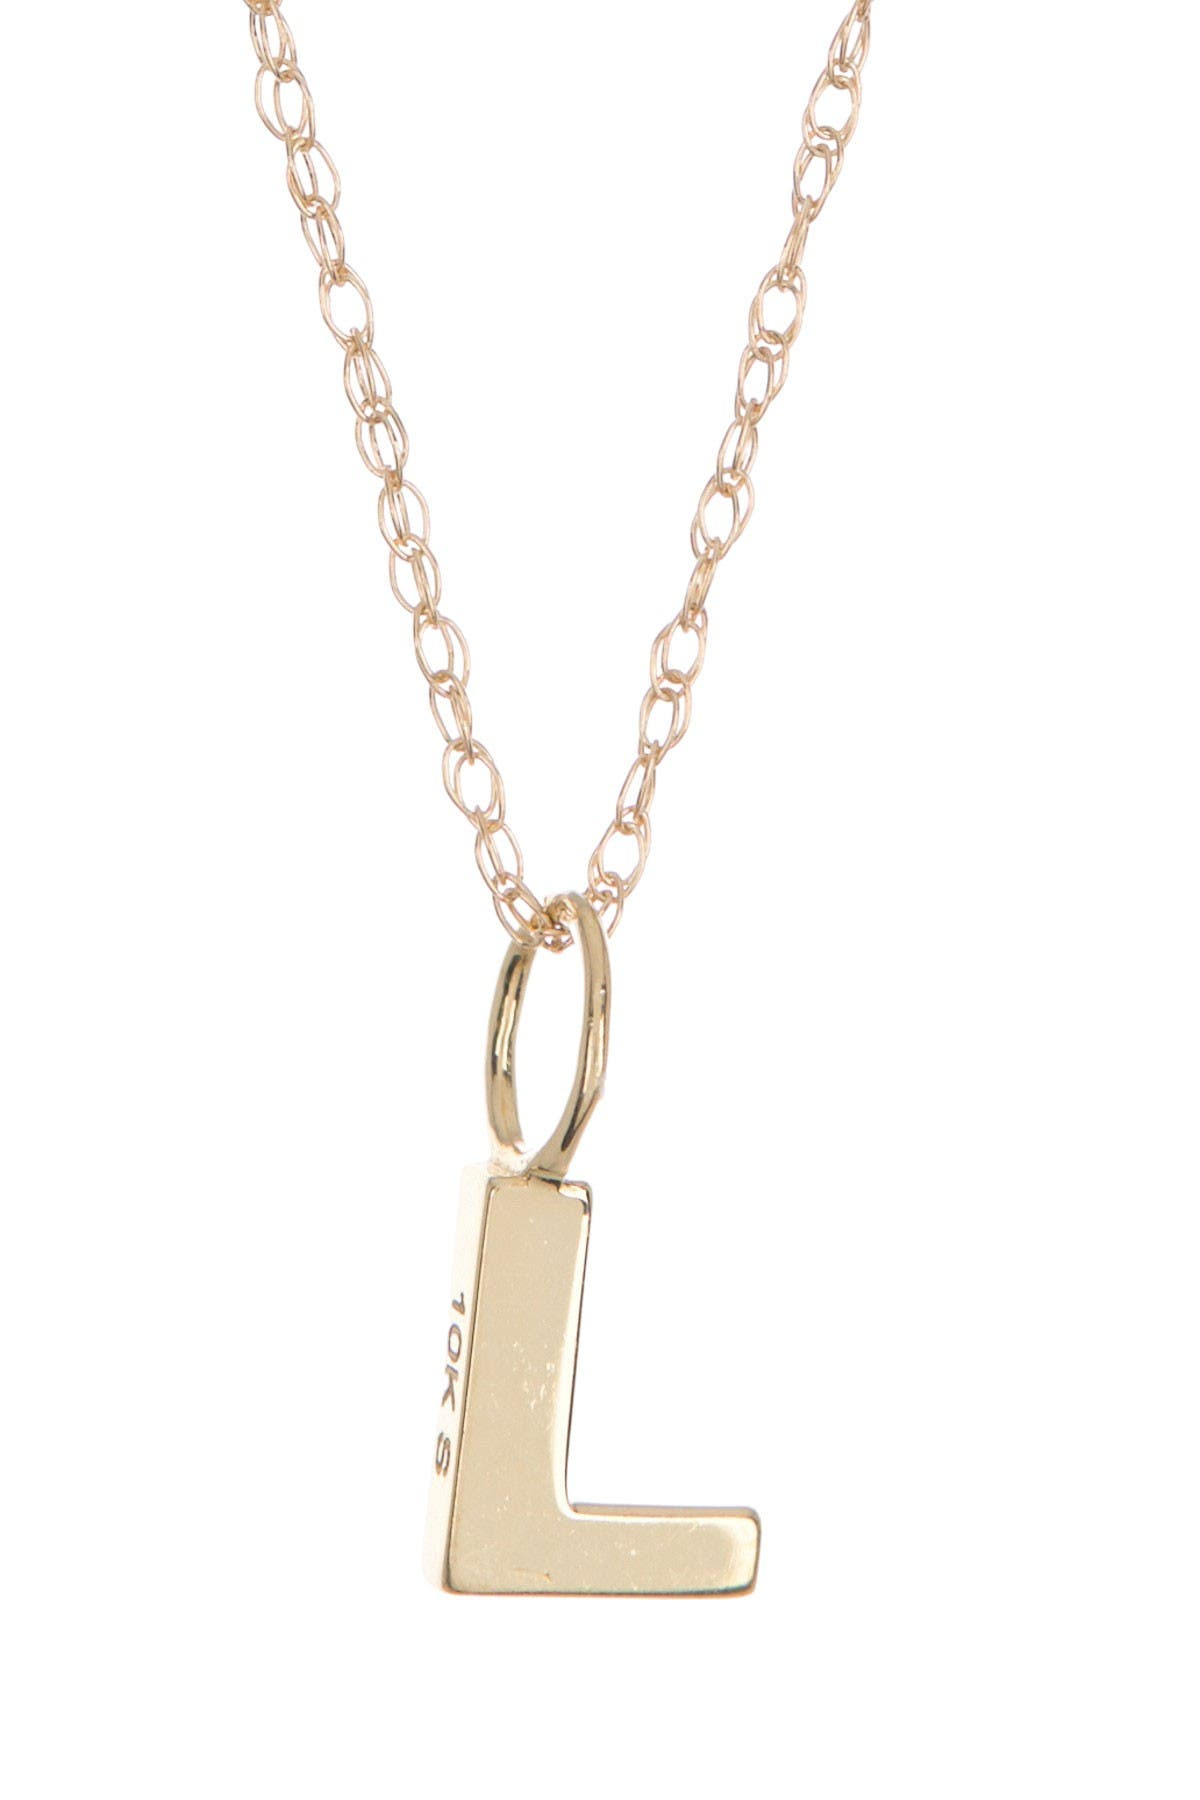 Image of Candela 10K Yellow Gold Iniital Pendant Necklace